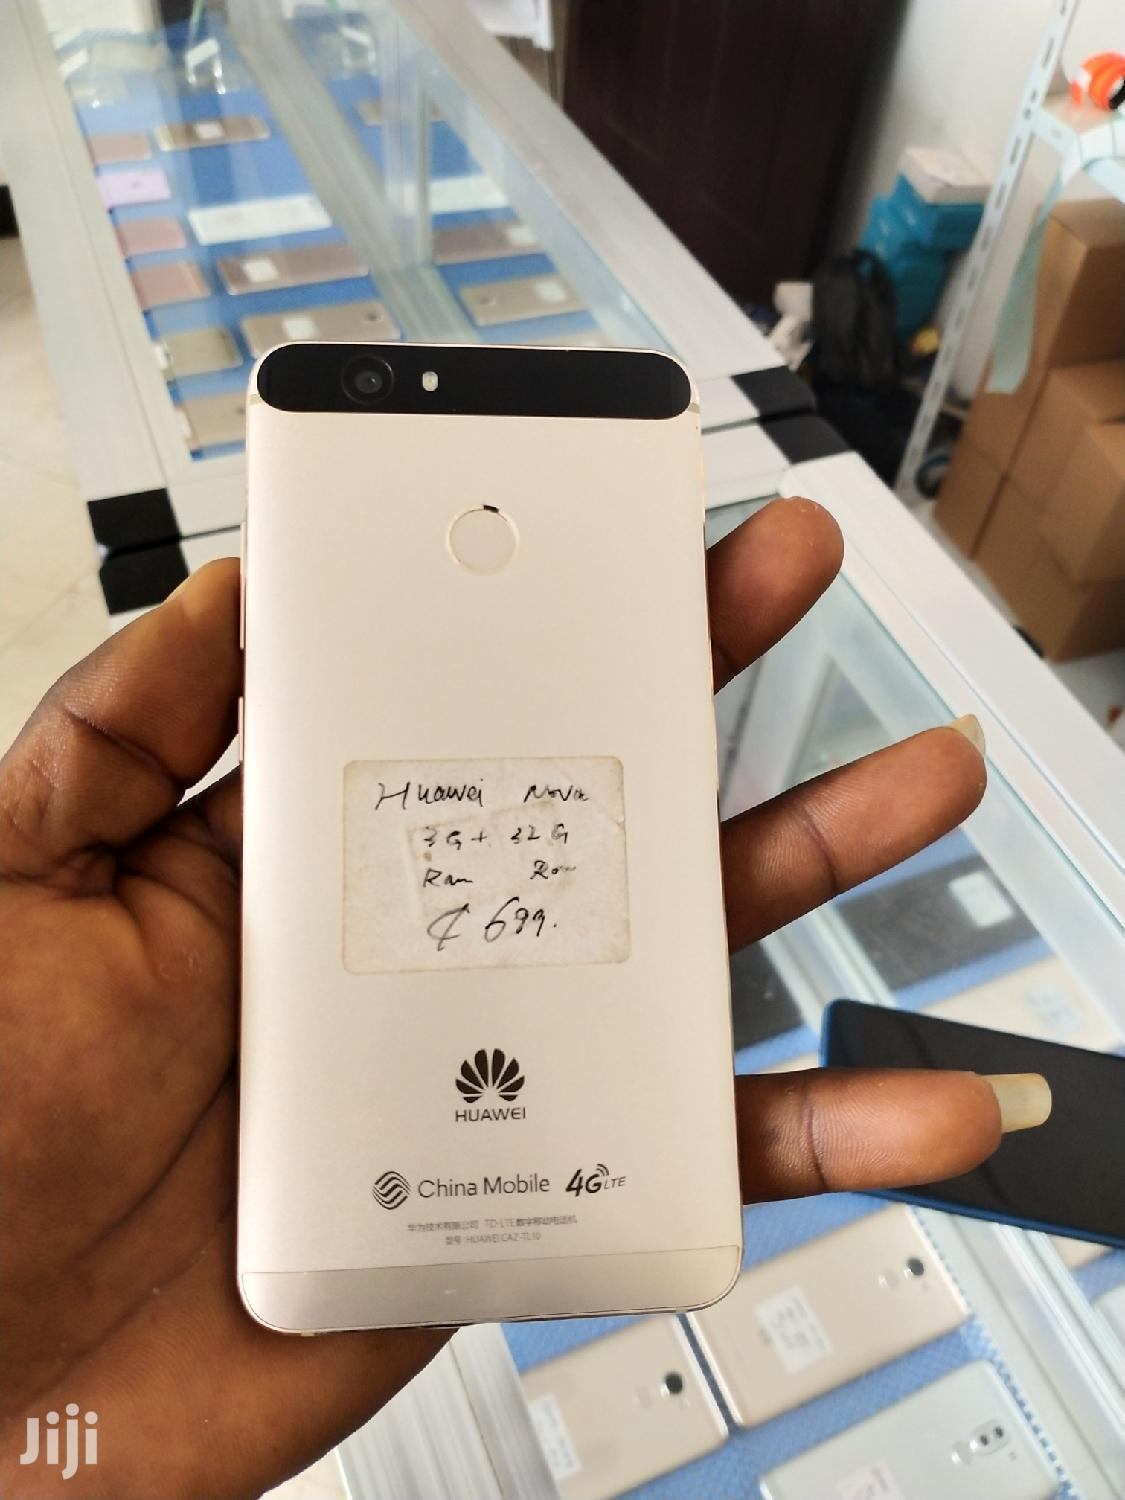 New Huawei Nova 32 GB Gold | Mobile Phones for sale in Accra Metropolitan, Greater Accra, Ghana